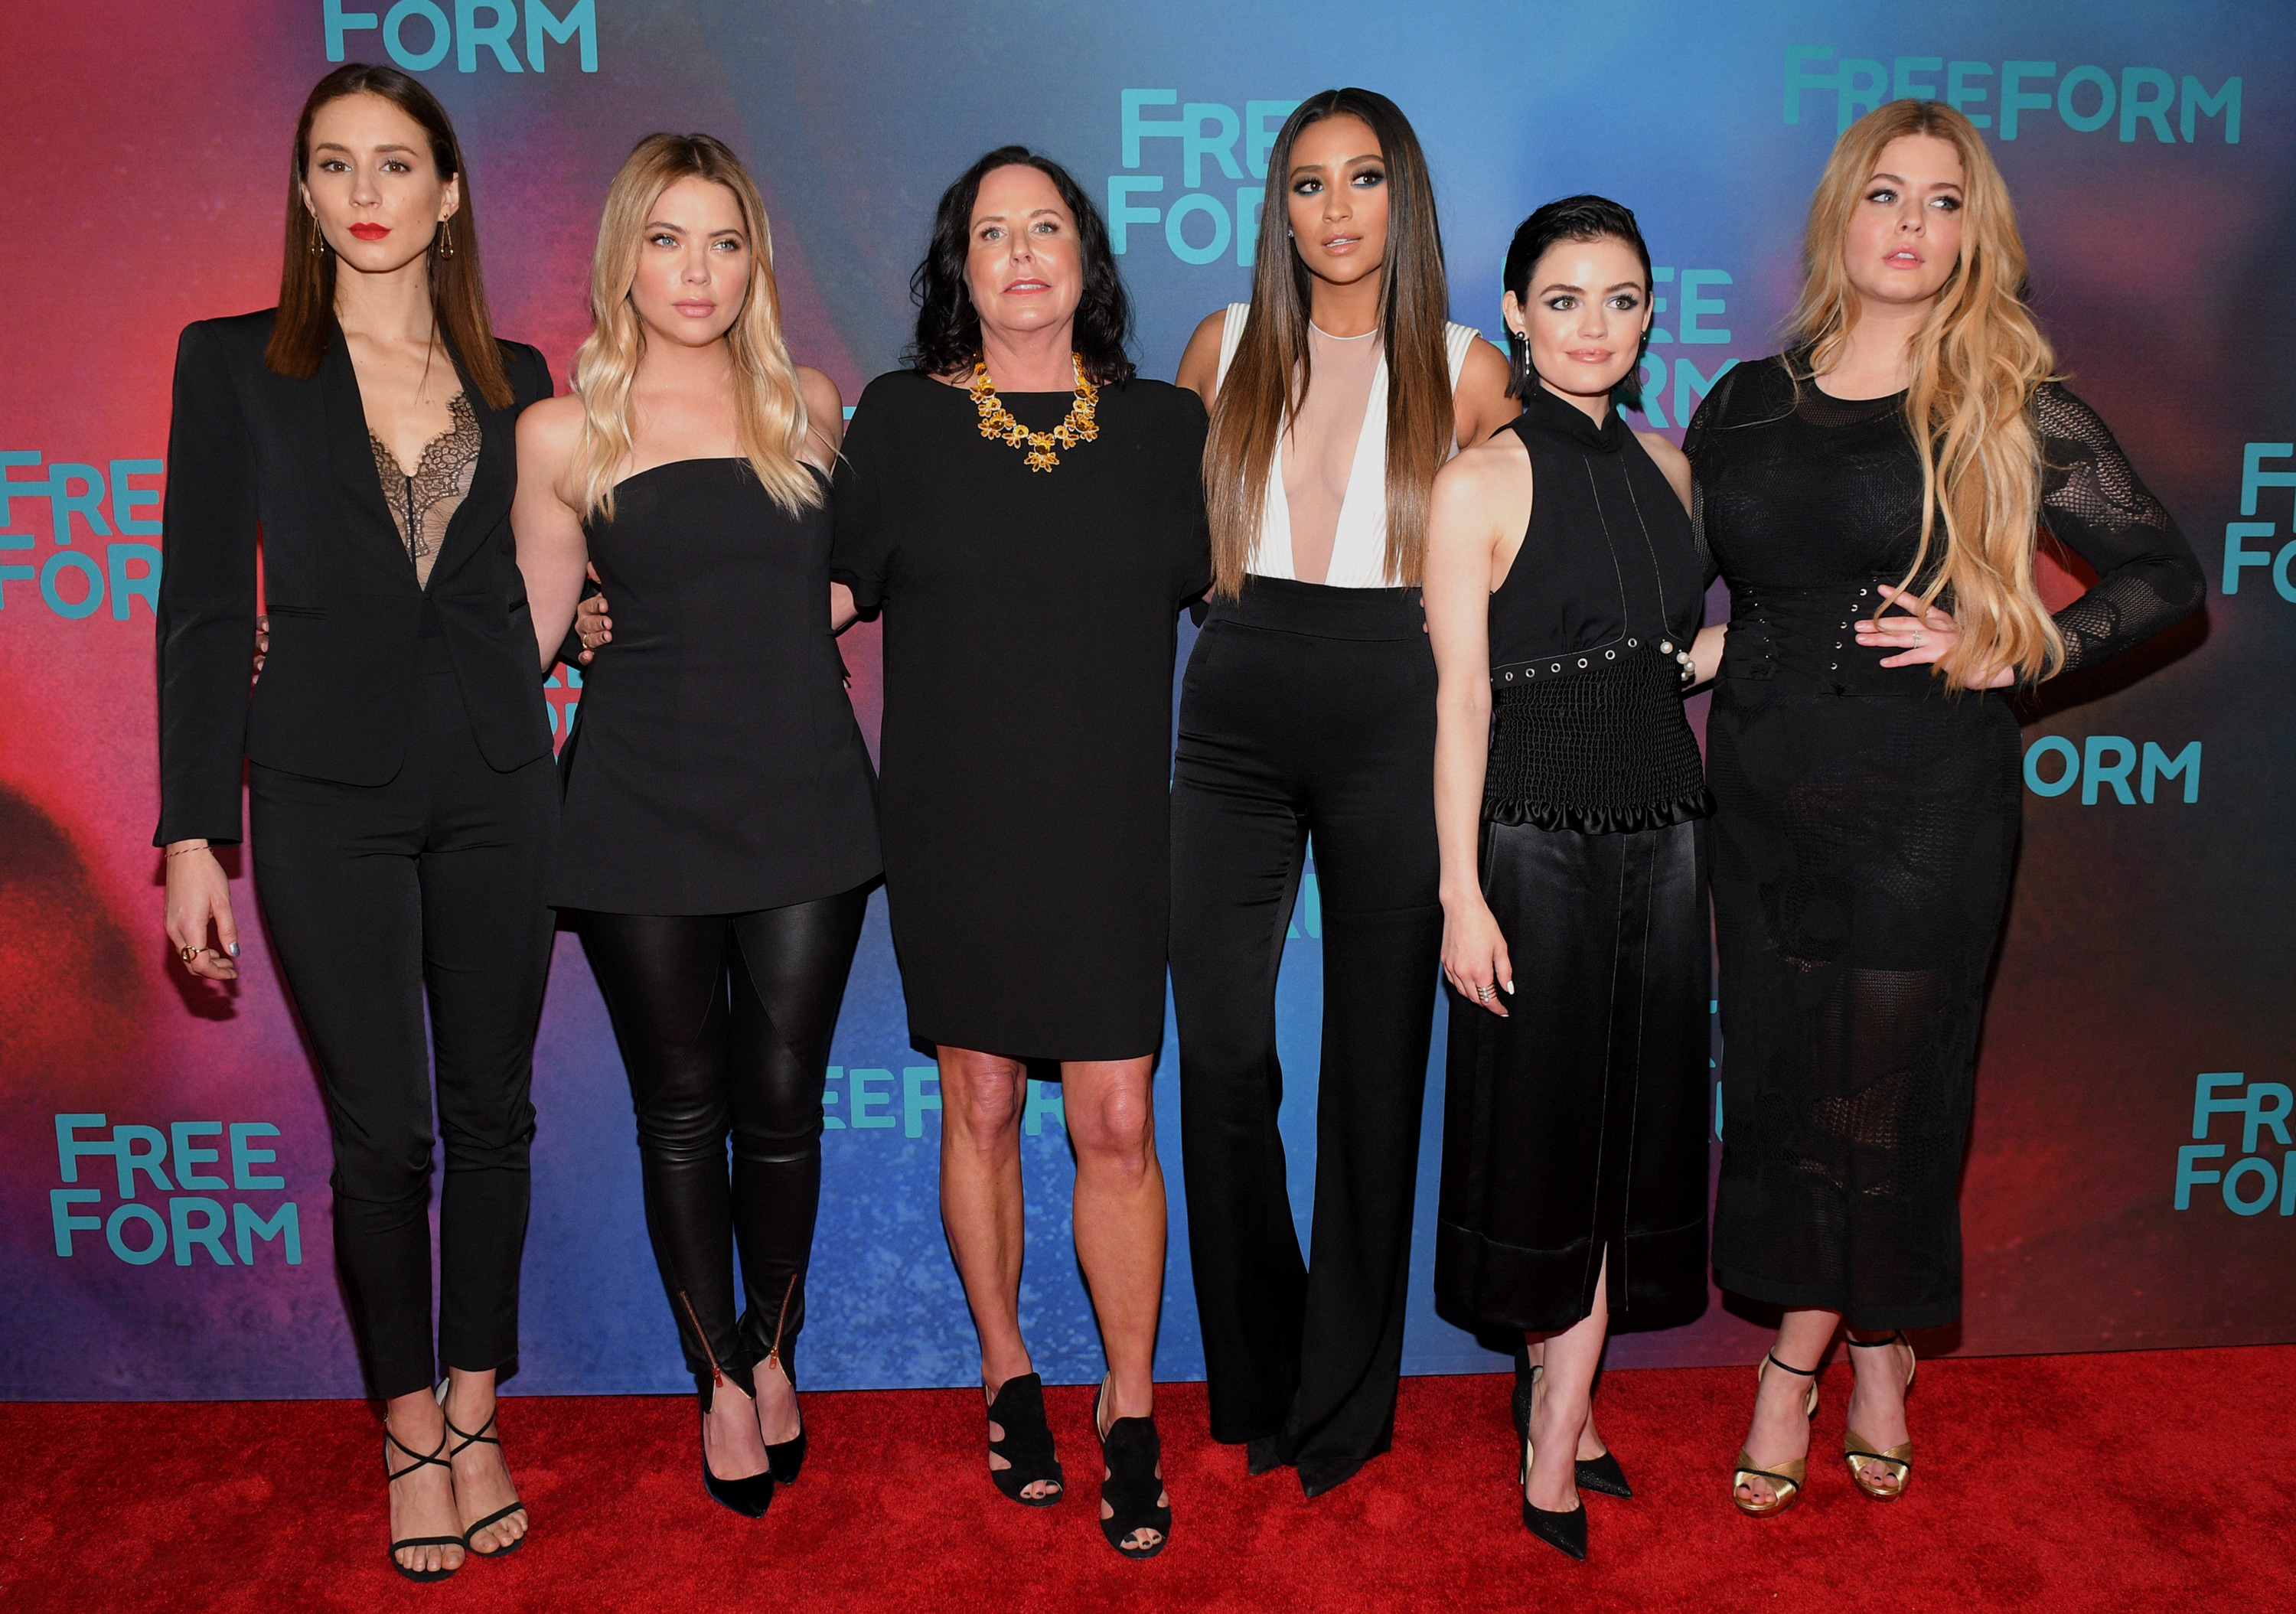 TROIAN BELLASARIO, ASHLEY BENSON, I. MARLENE KING, SHAY MITCHELL, LUCY HALE, SASHA PIETERSE